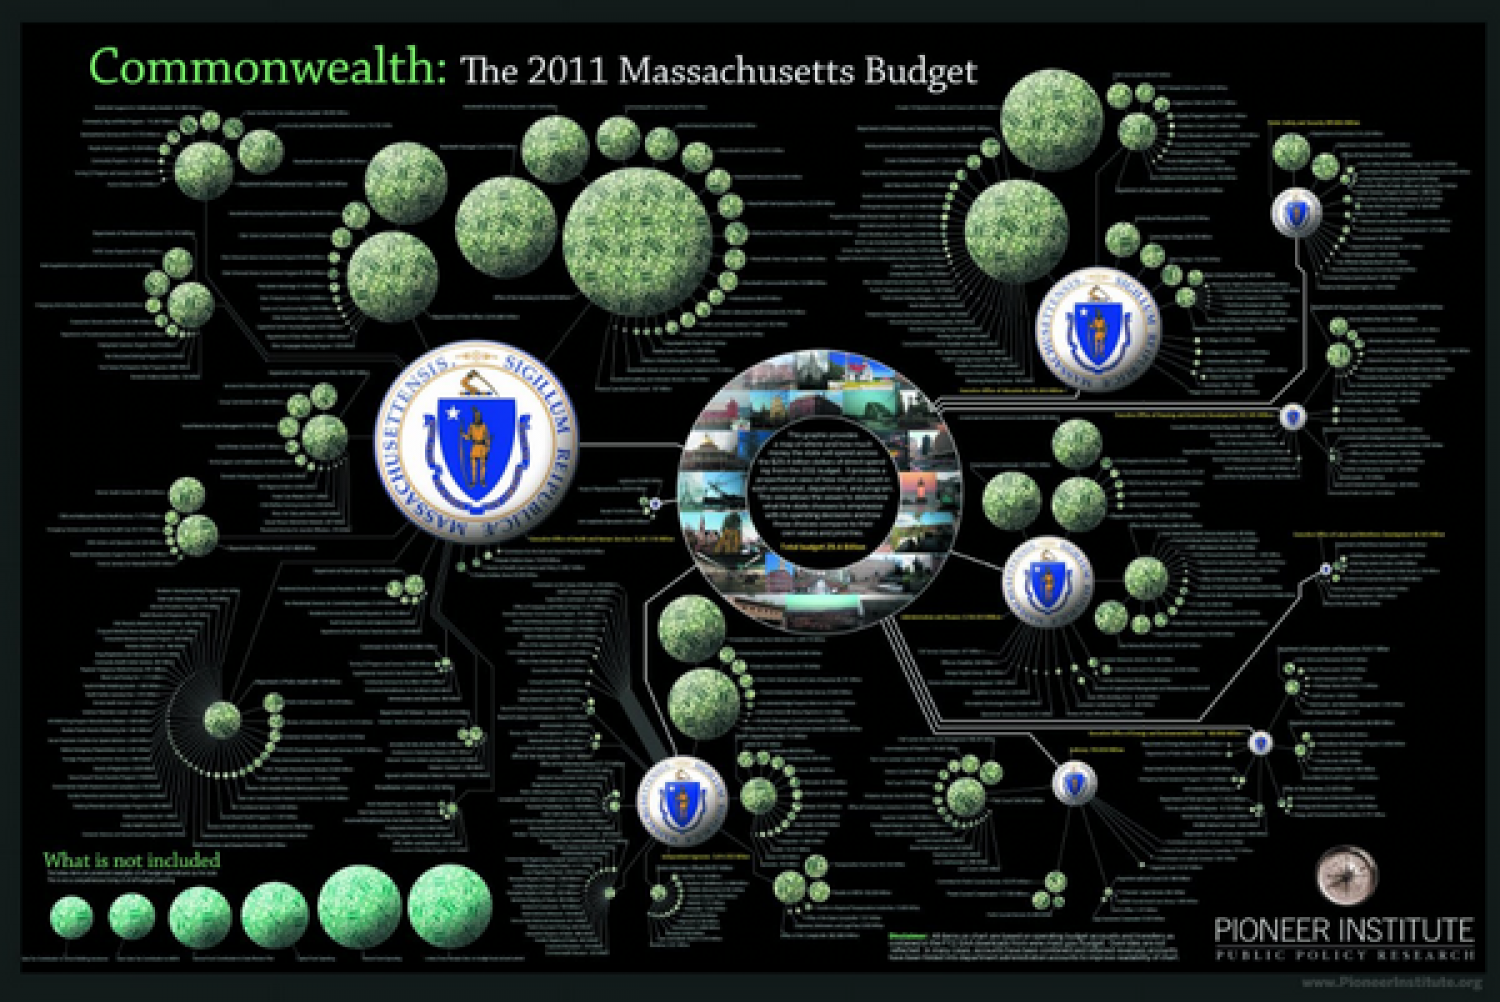 Anatomy of a State Budget Infographic